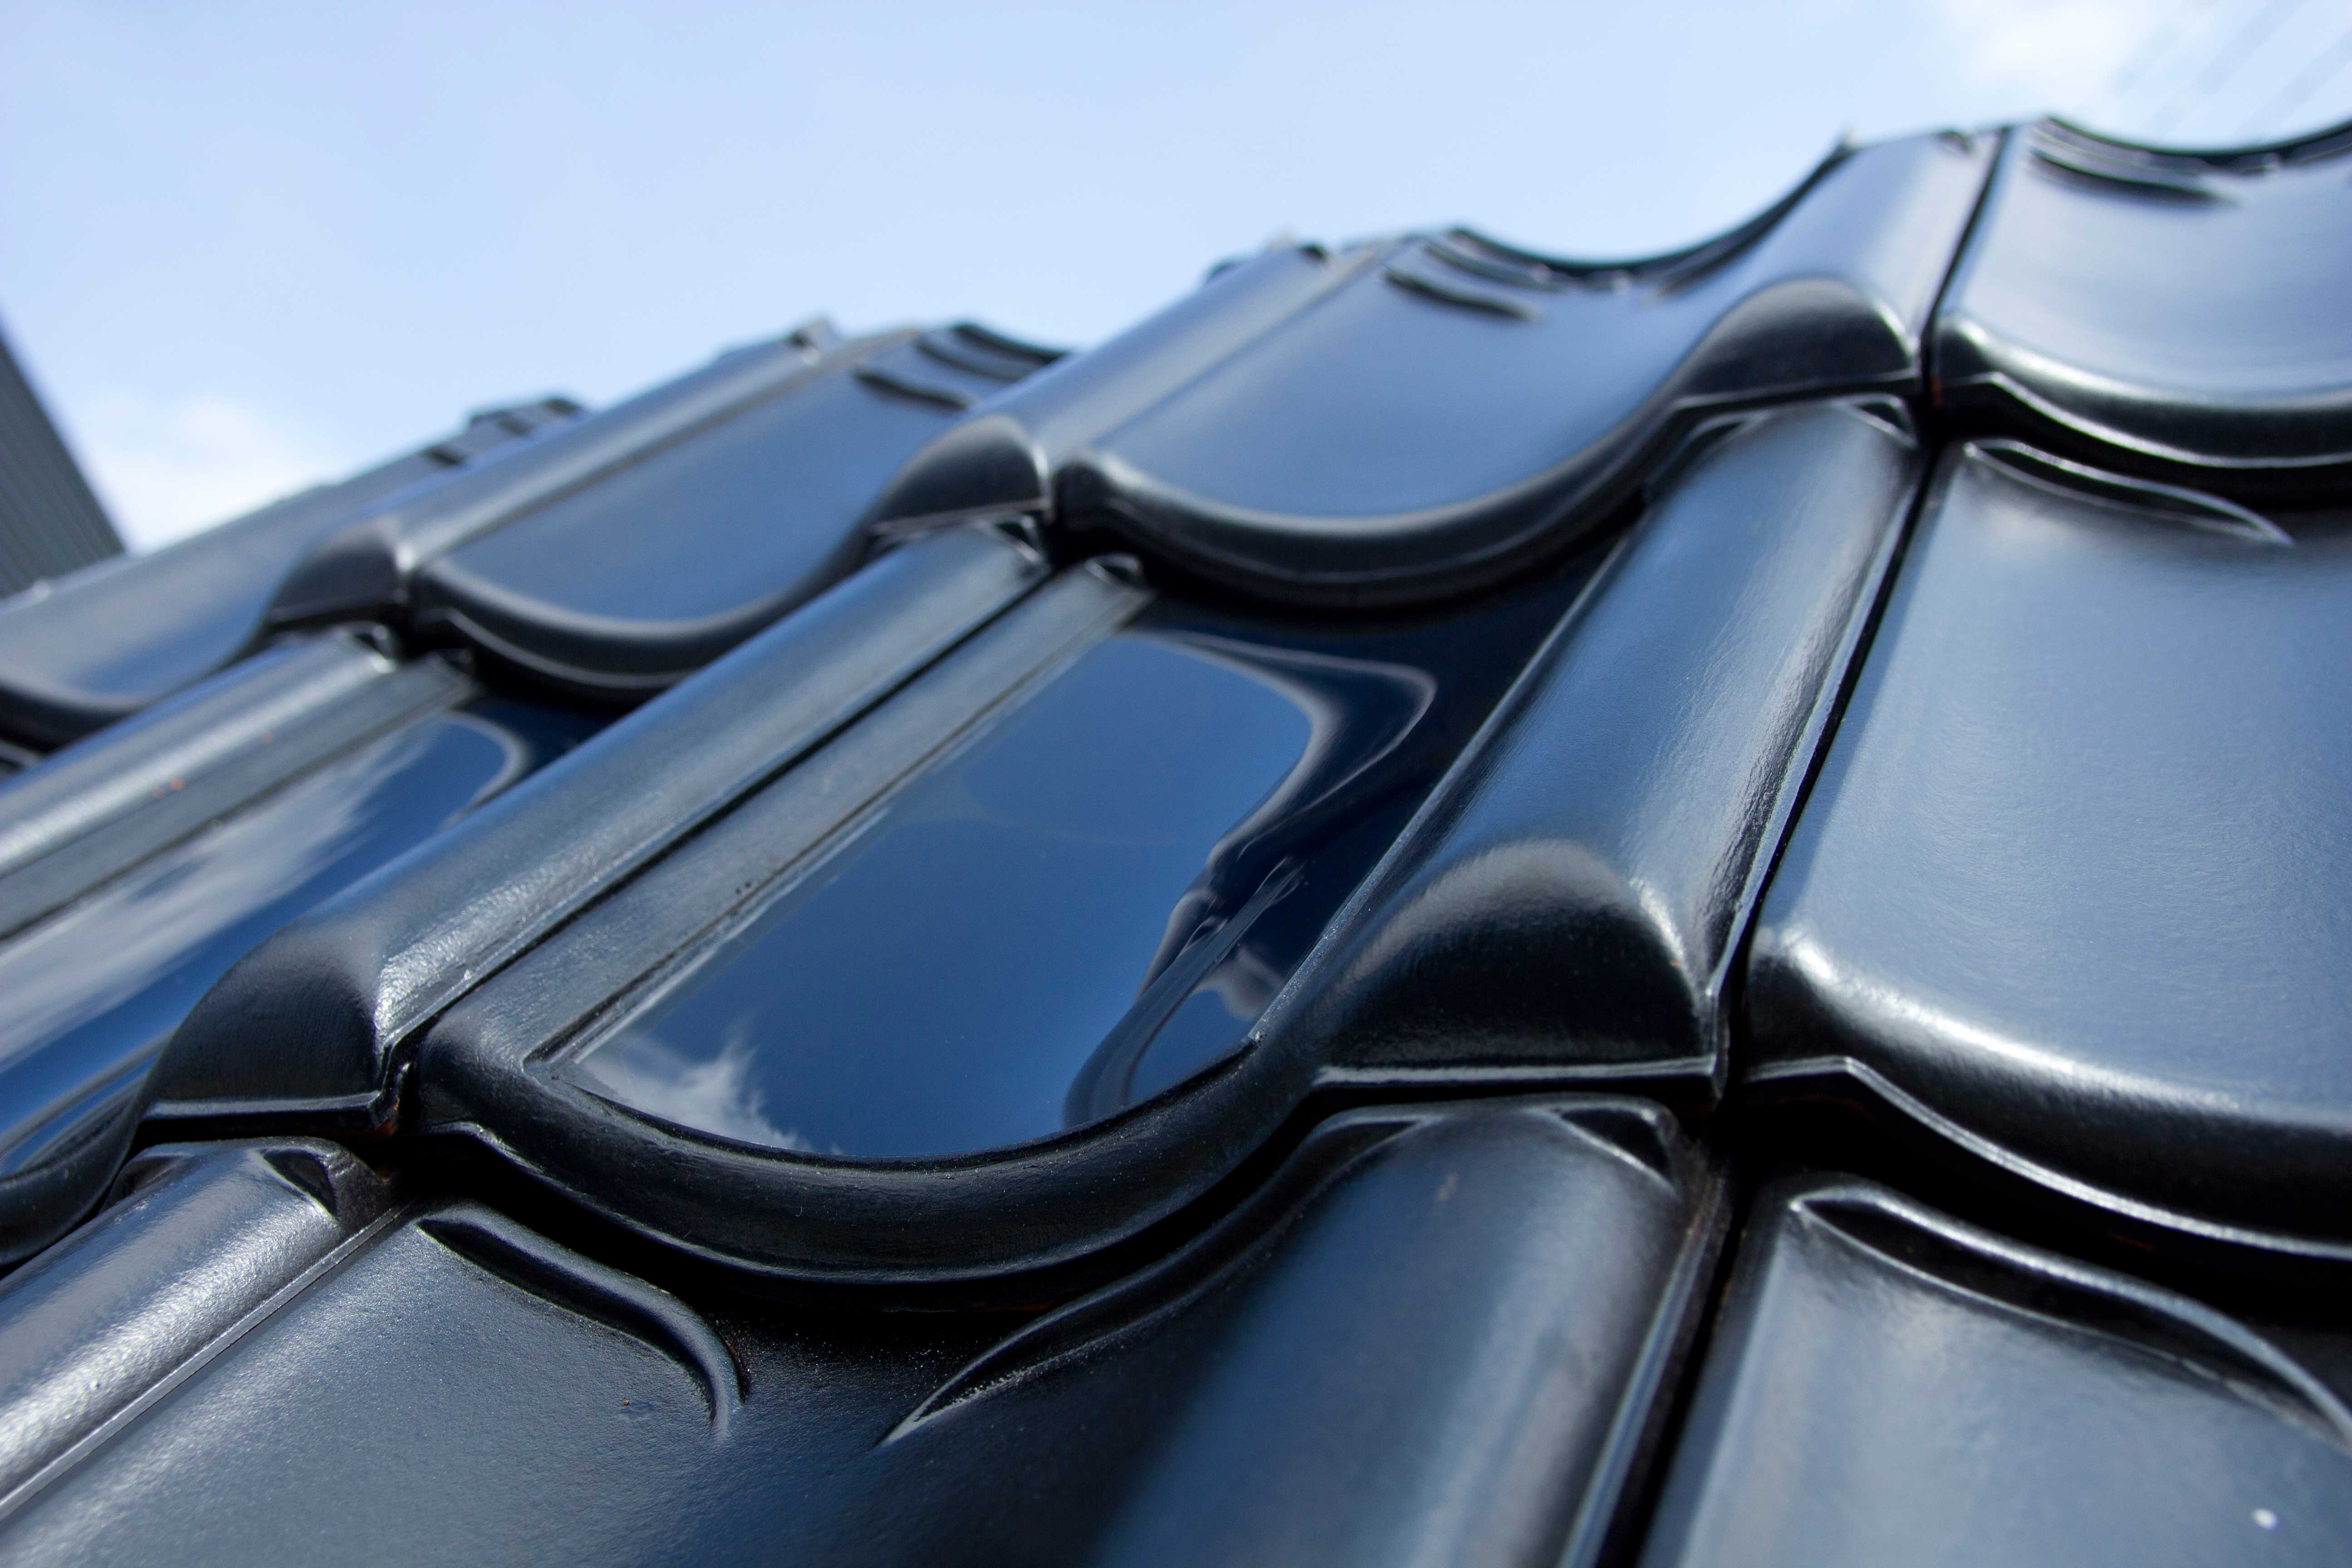 FlexSol solar roof tile with curved solar panels power house